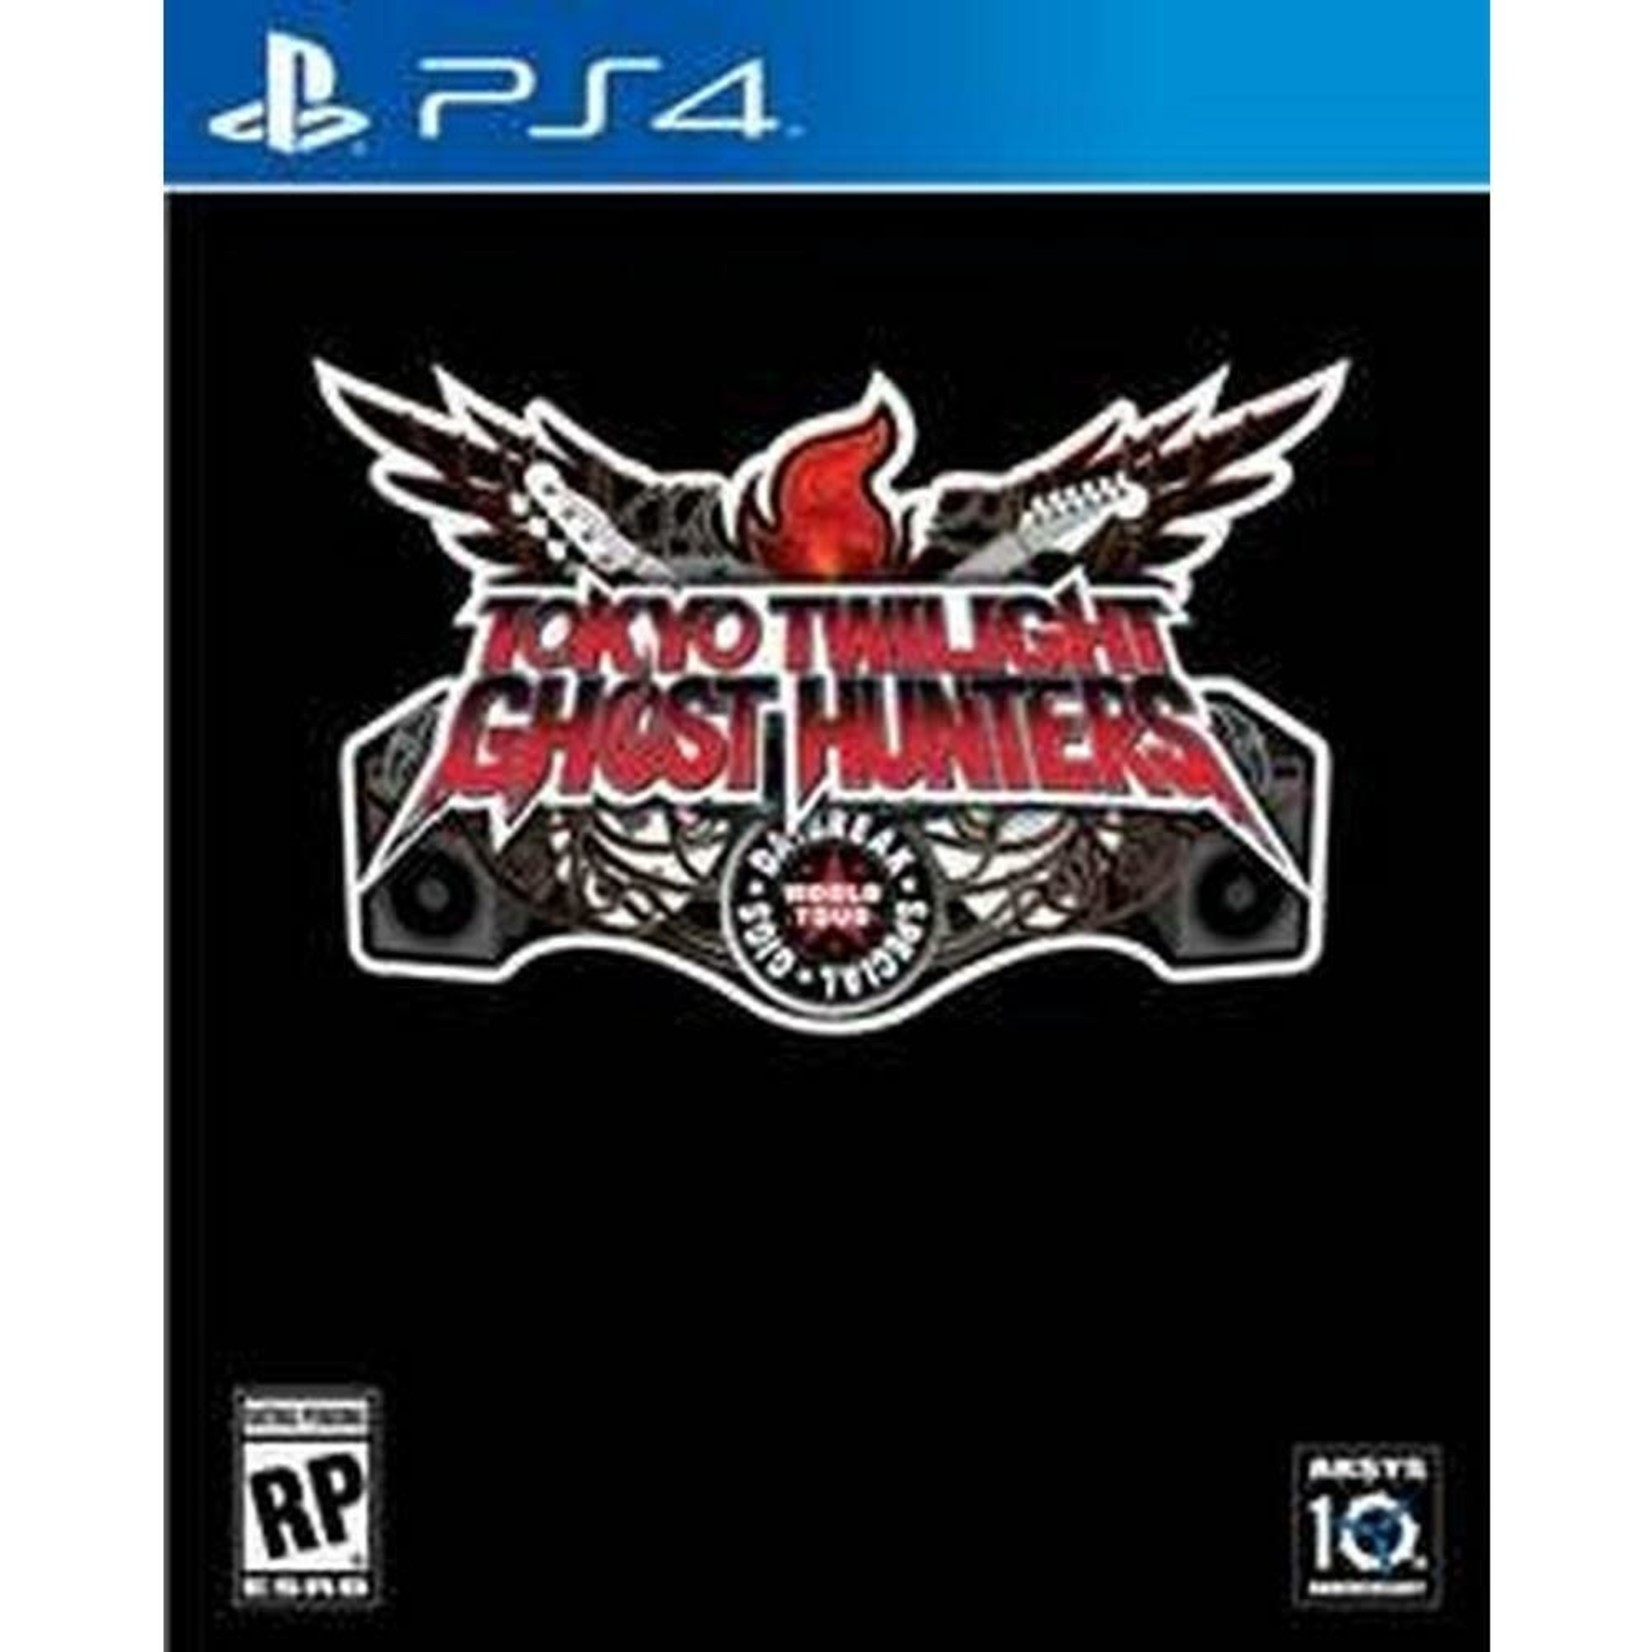 PS4-Tokyo Twilight Ghost Hunters Daybreak Special Gigs World Tour